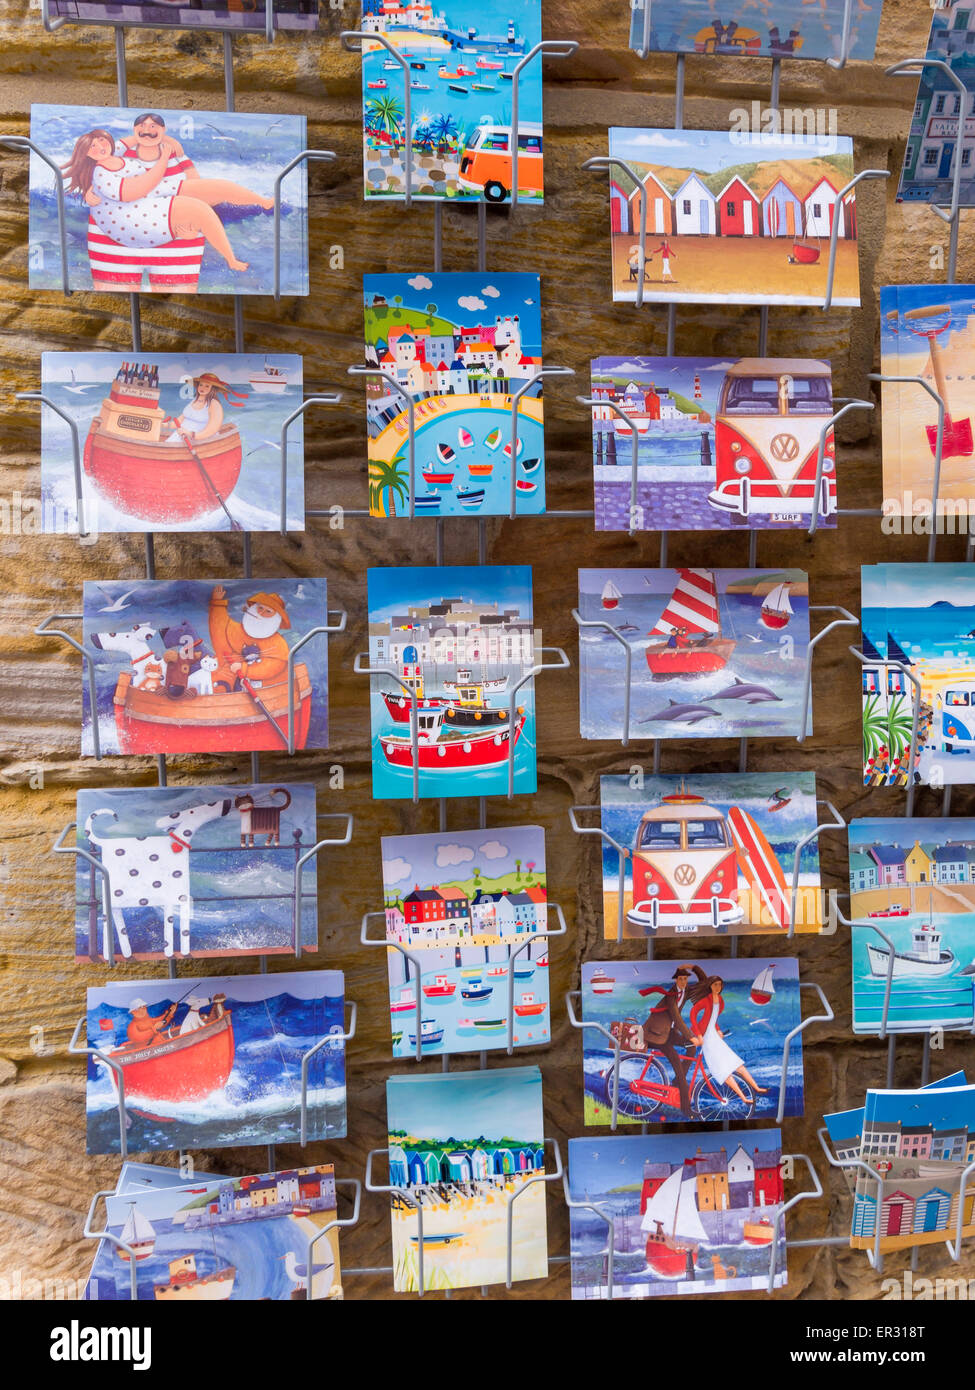 Seaside postcards for sale in a rack outside a shop in Whitby, North Yorkshire, UK - Stock Image